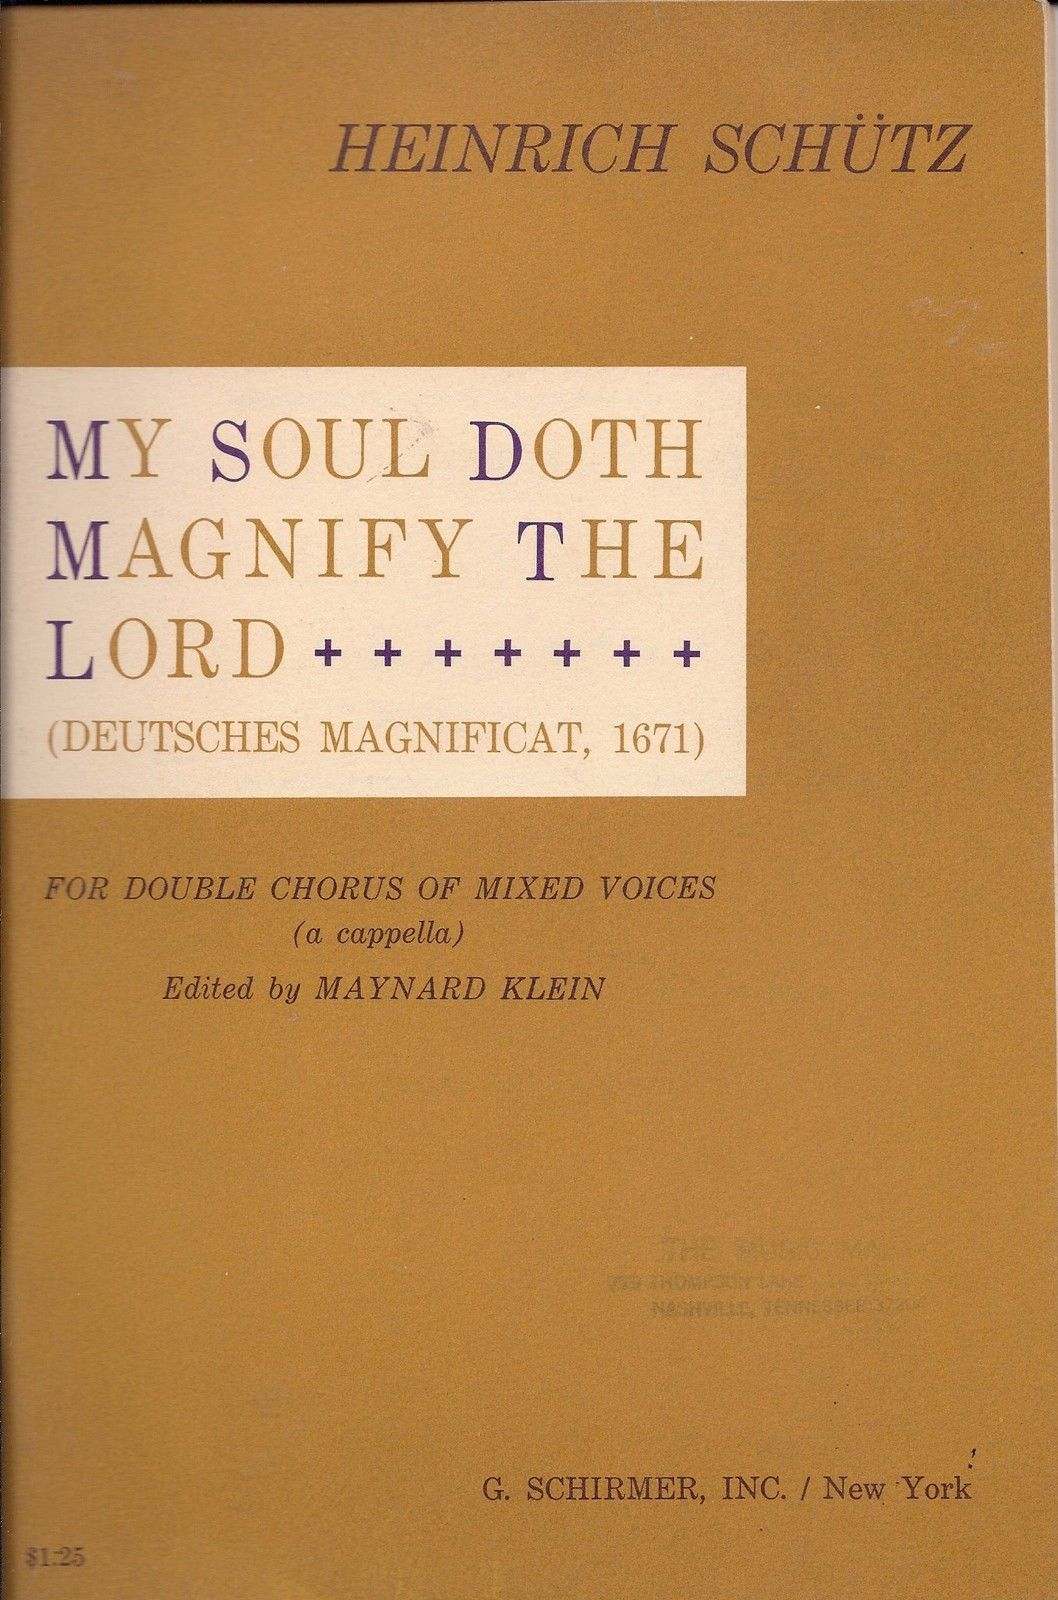 Primary image for My Soul Doth Magnify the Lord-Song Book for Double Chorus of Mixed Voices